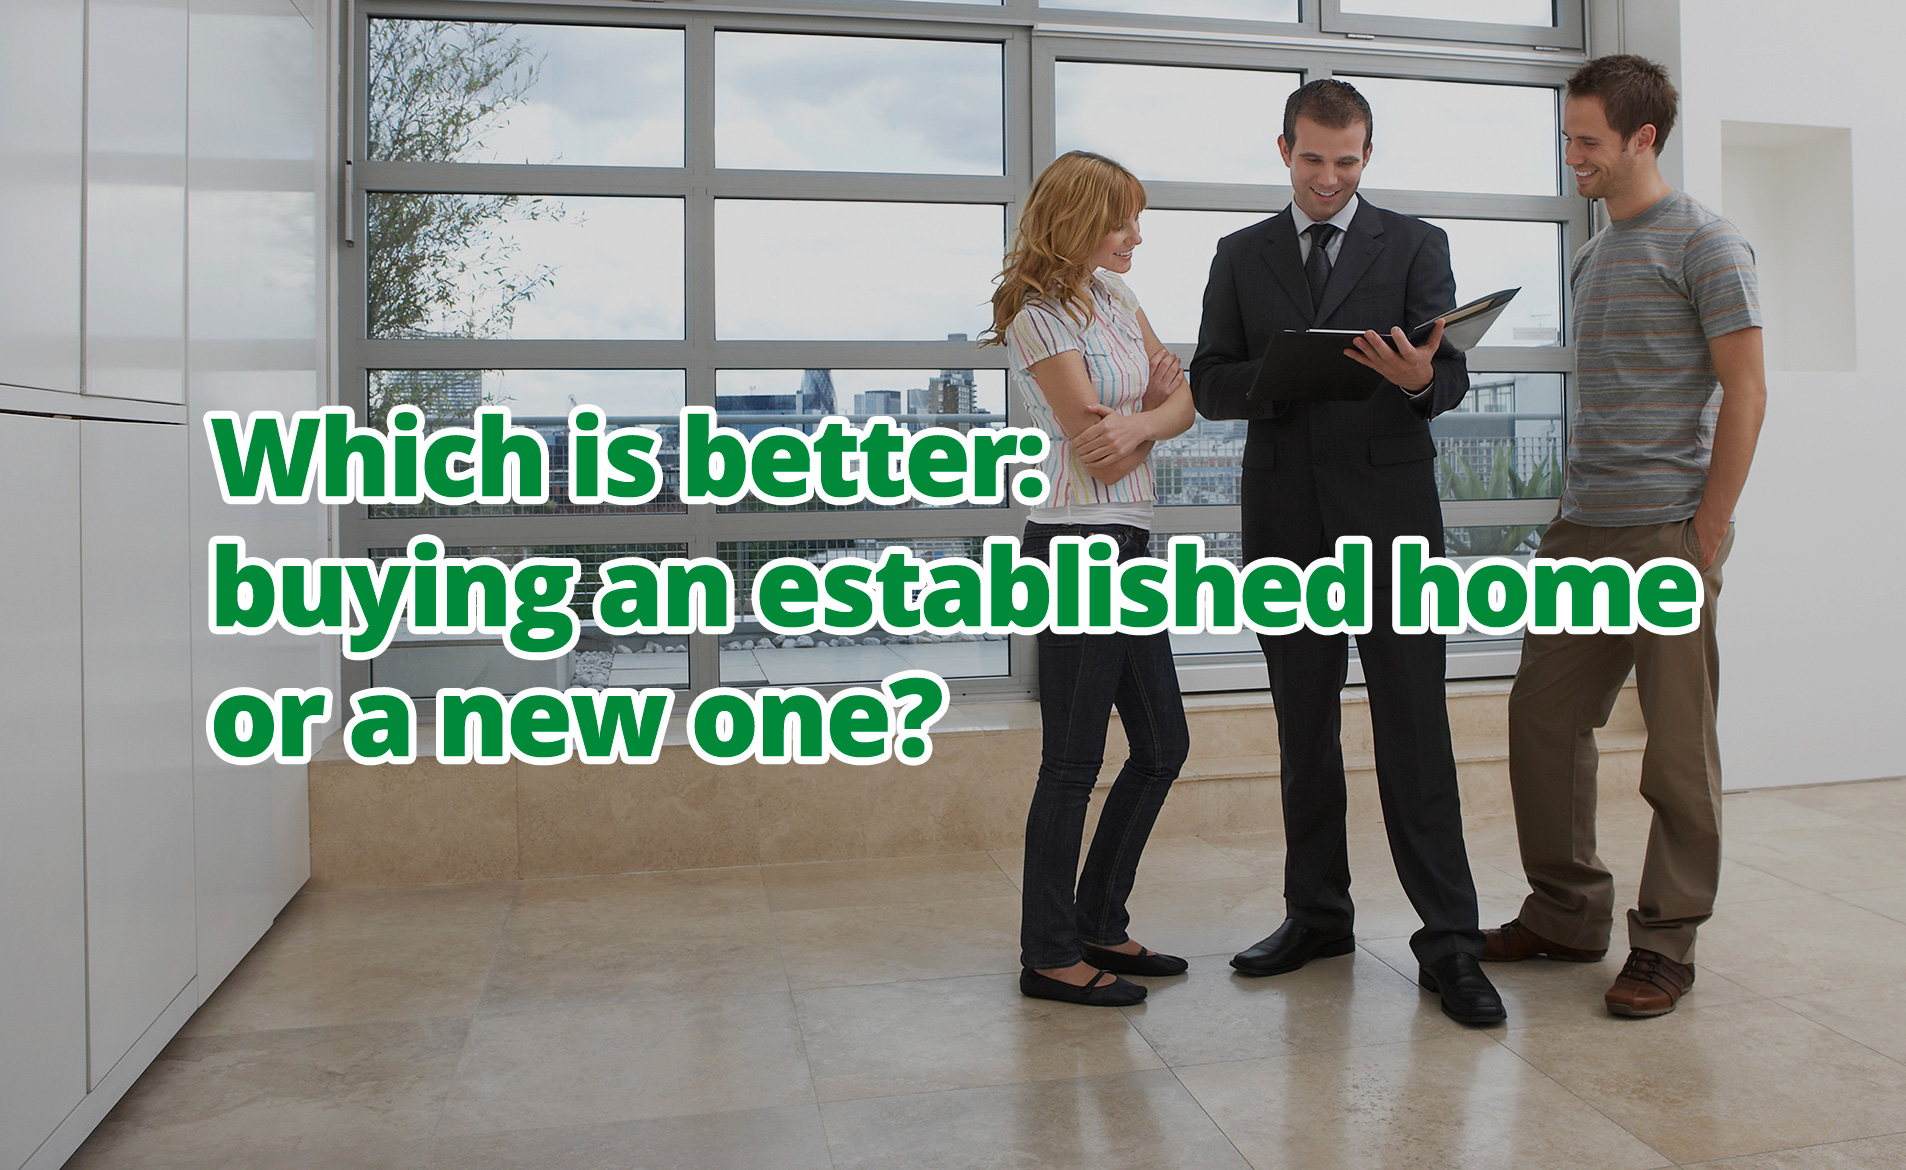 Which is better: buying an established home or a new one?